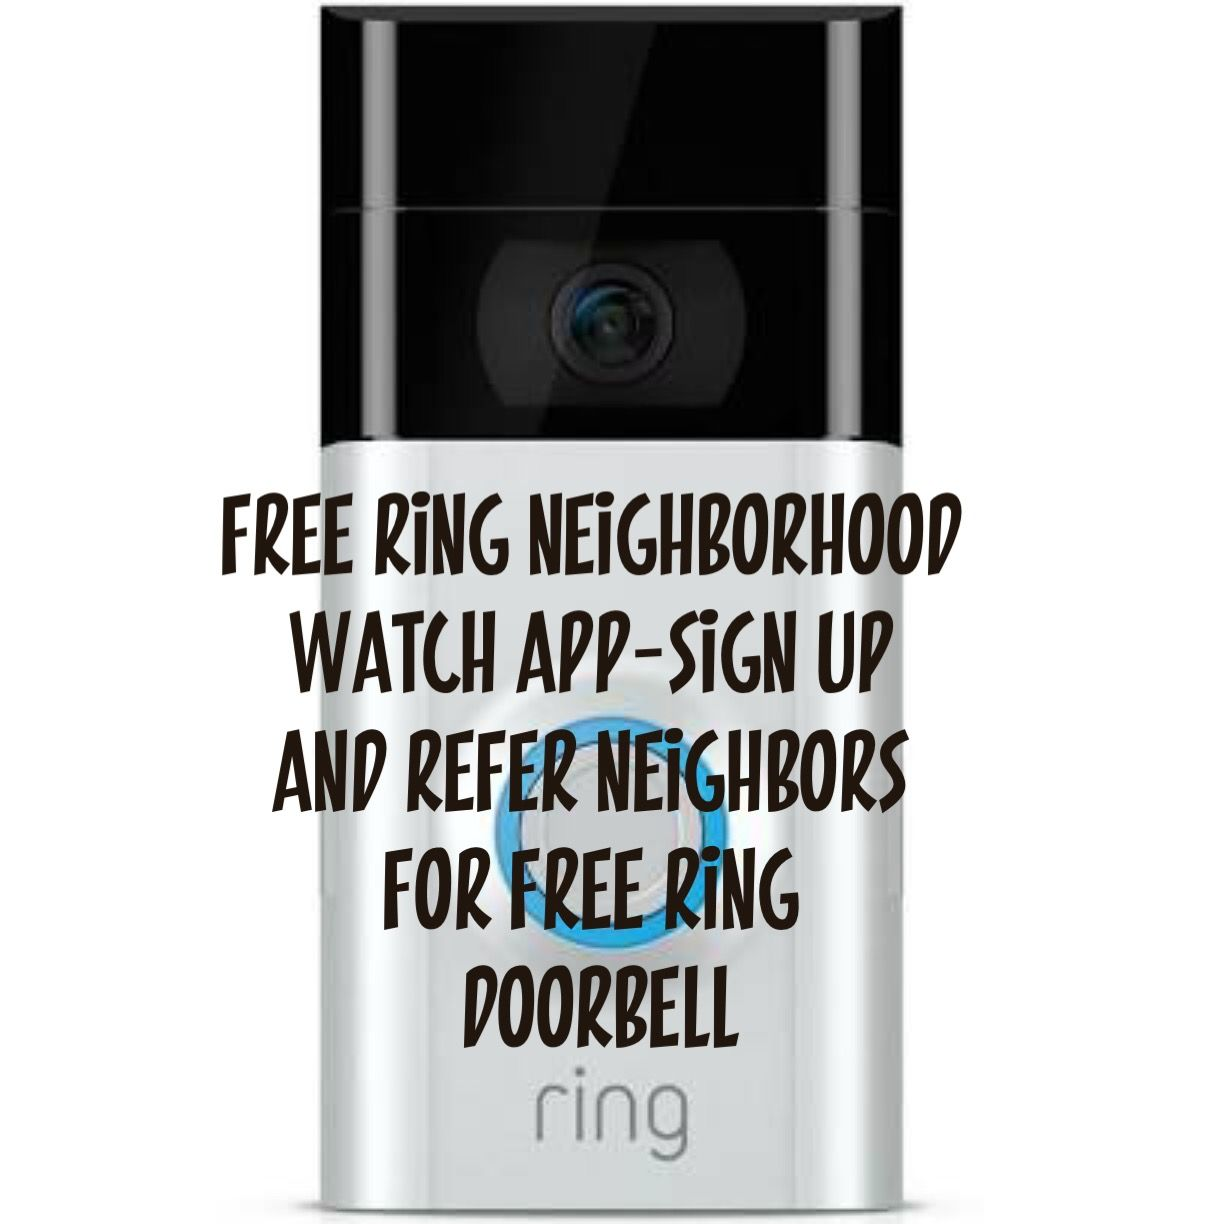 Free Neighborhood Watch App using Ring doorbells see